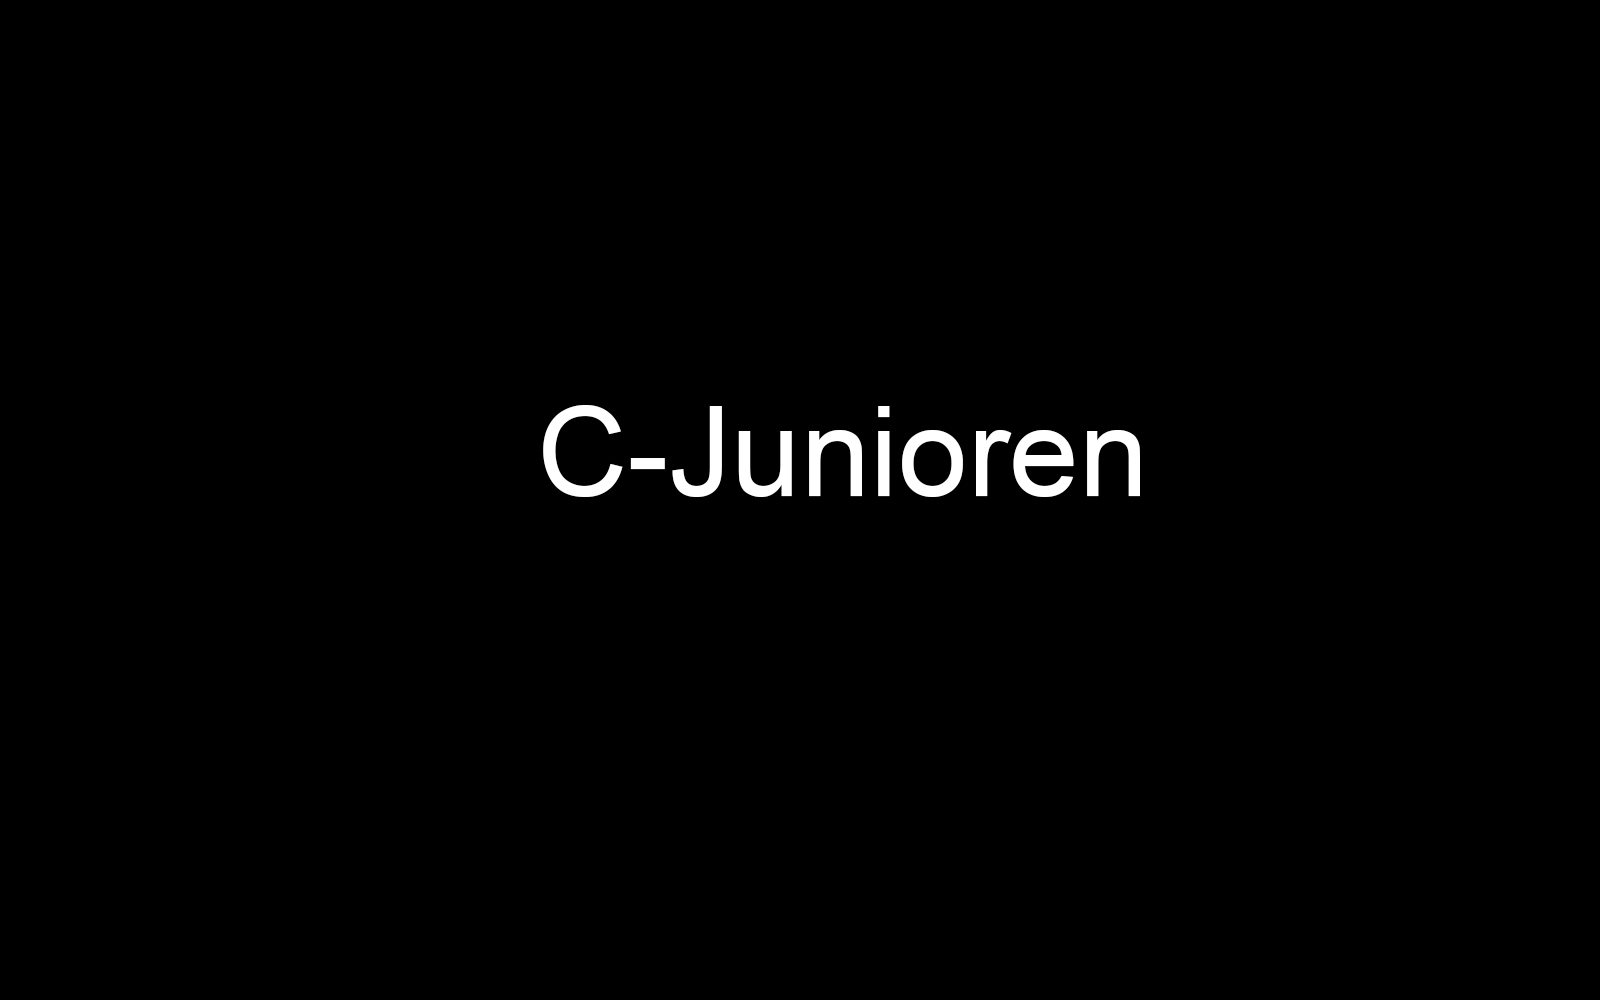 C-Junioren II